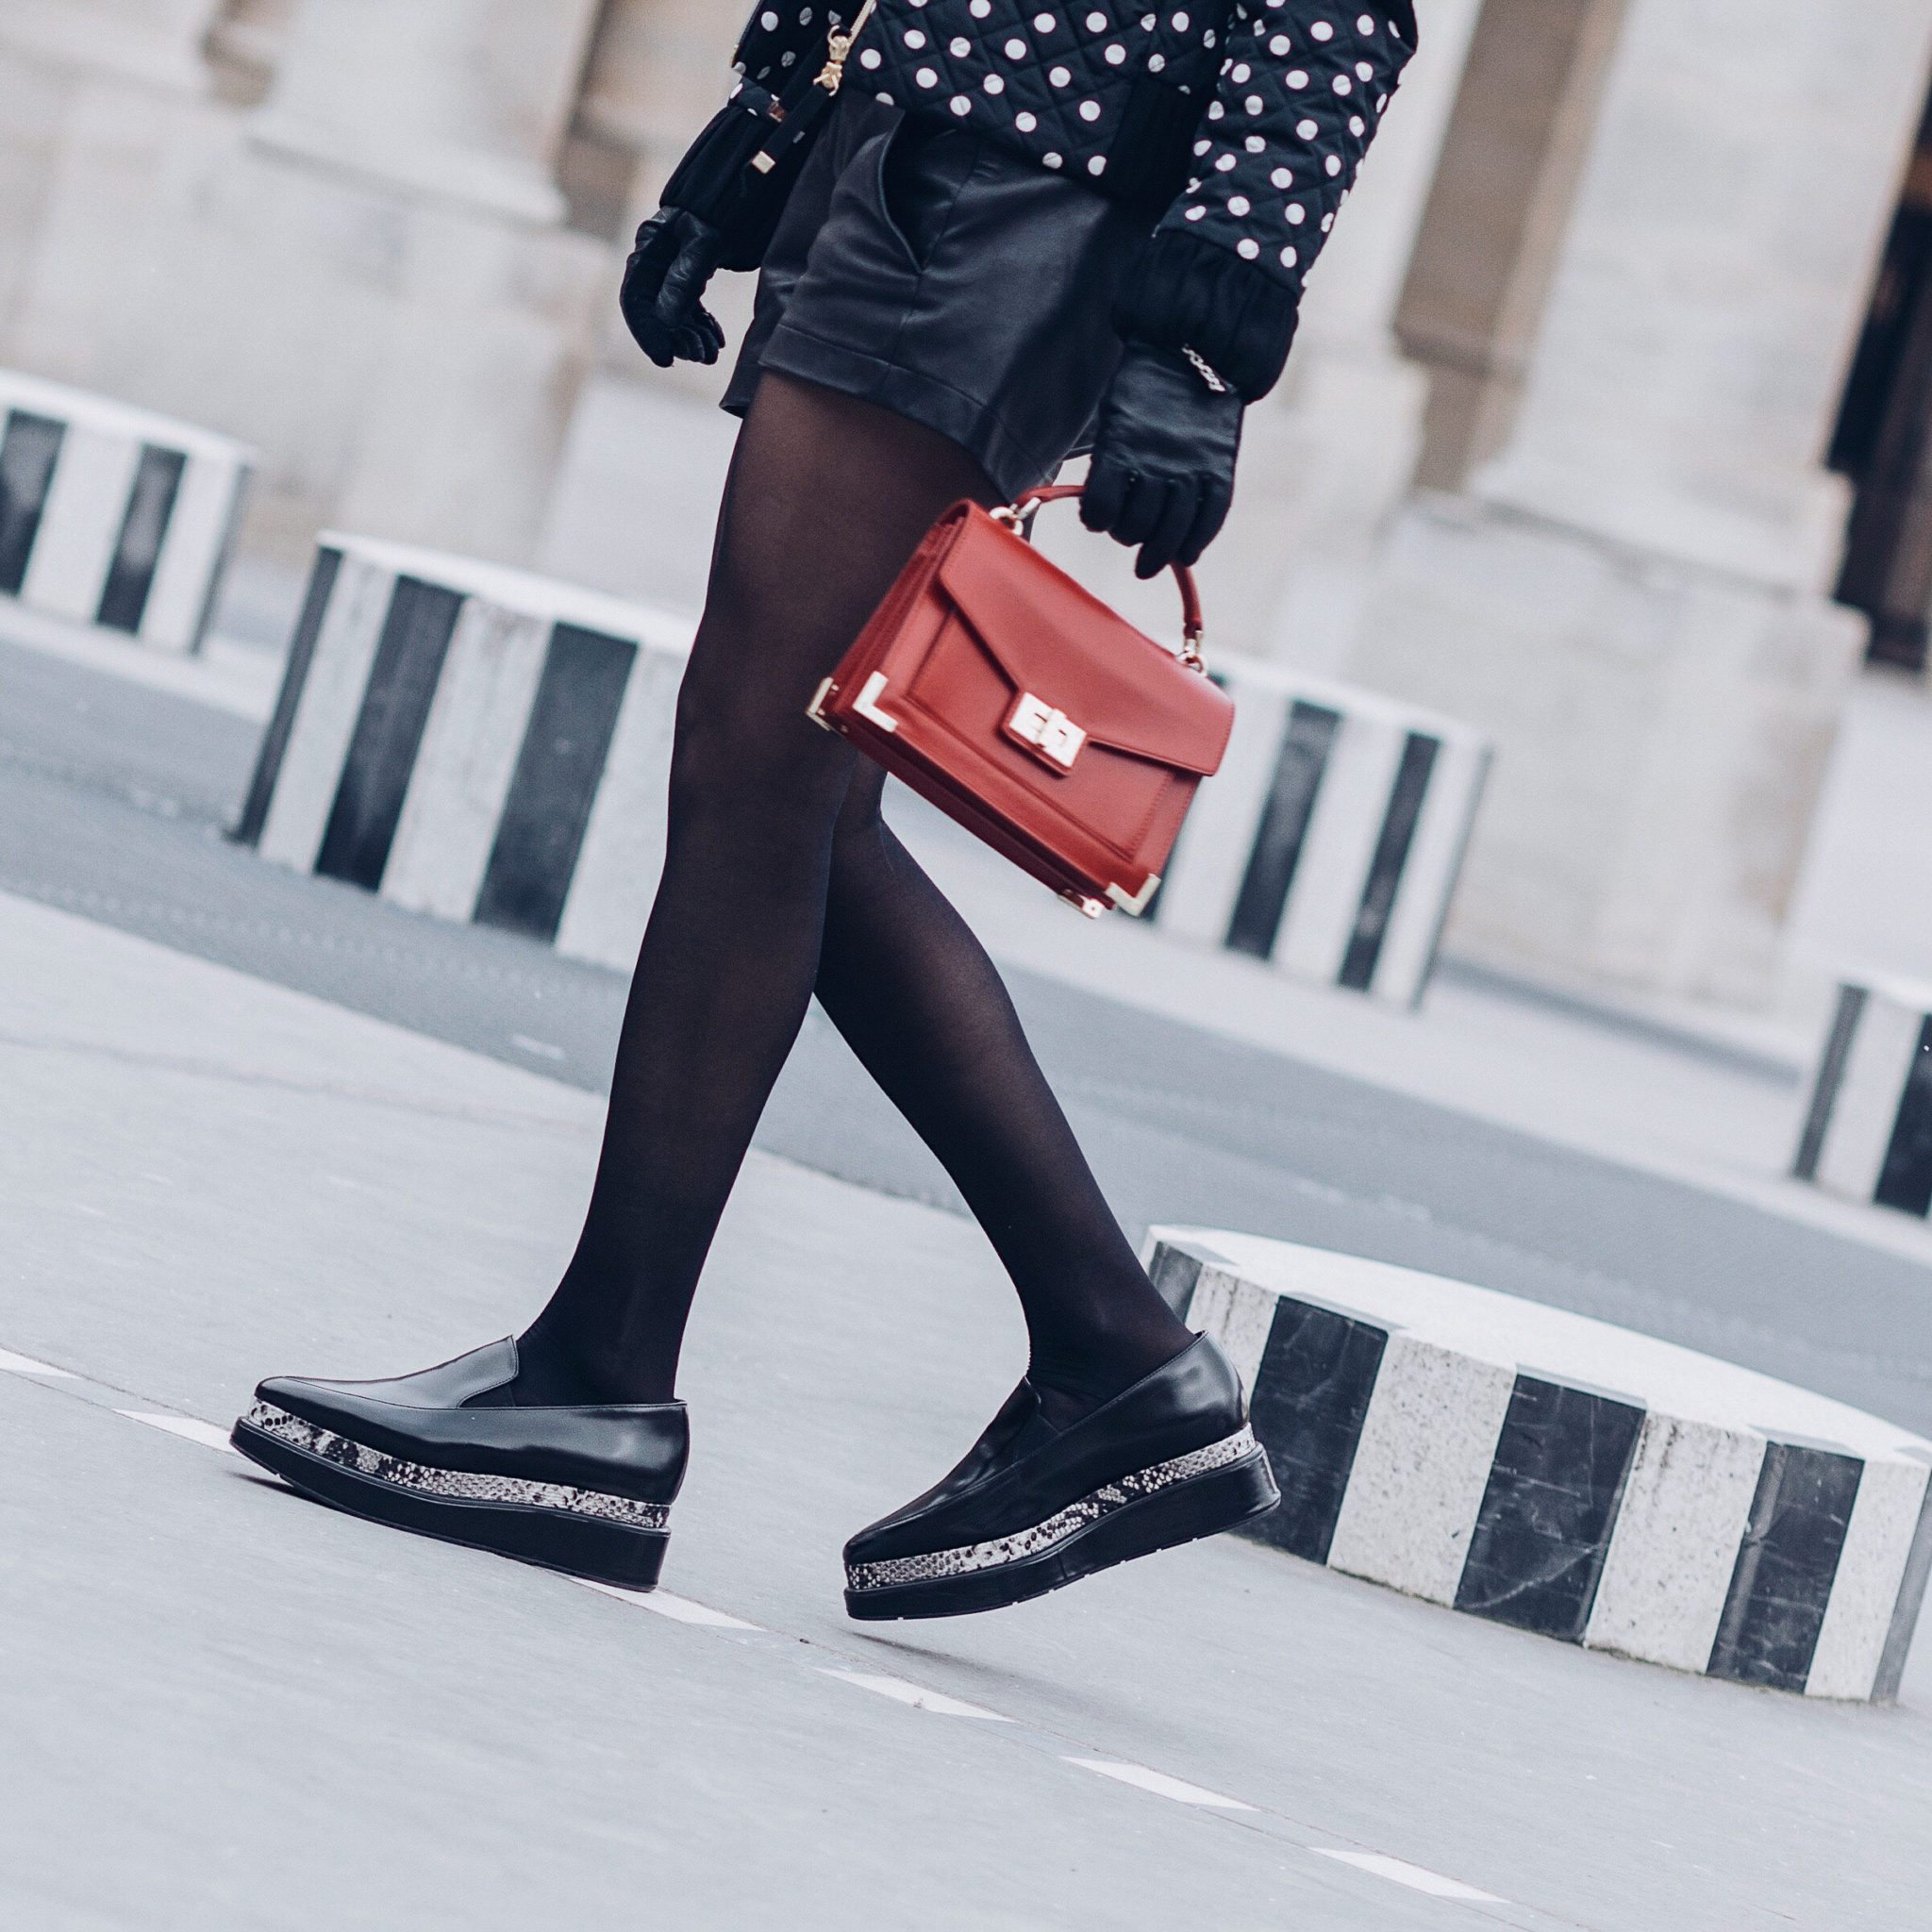 Parisian style by Julia Comil French Fashion Blogger Wearing Seven All Around Platform Loafers - The Kooples Emily Bag - Tara Jarmon Red sweater - Tara Jarmon Polka dots Bomber Jacket - Save to read more about Seven all around review on Houseofcomil.com